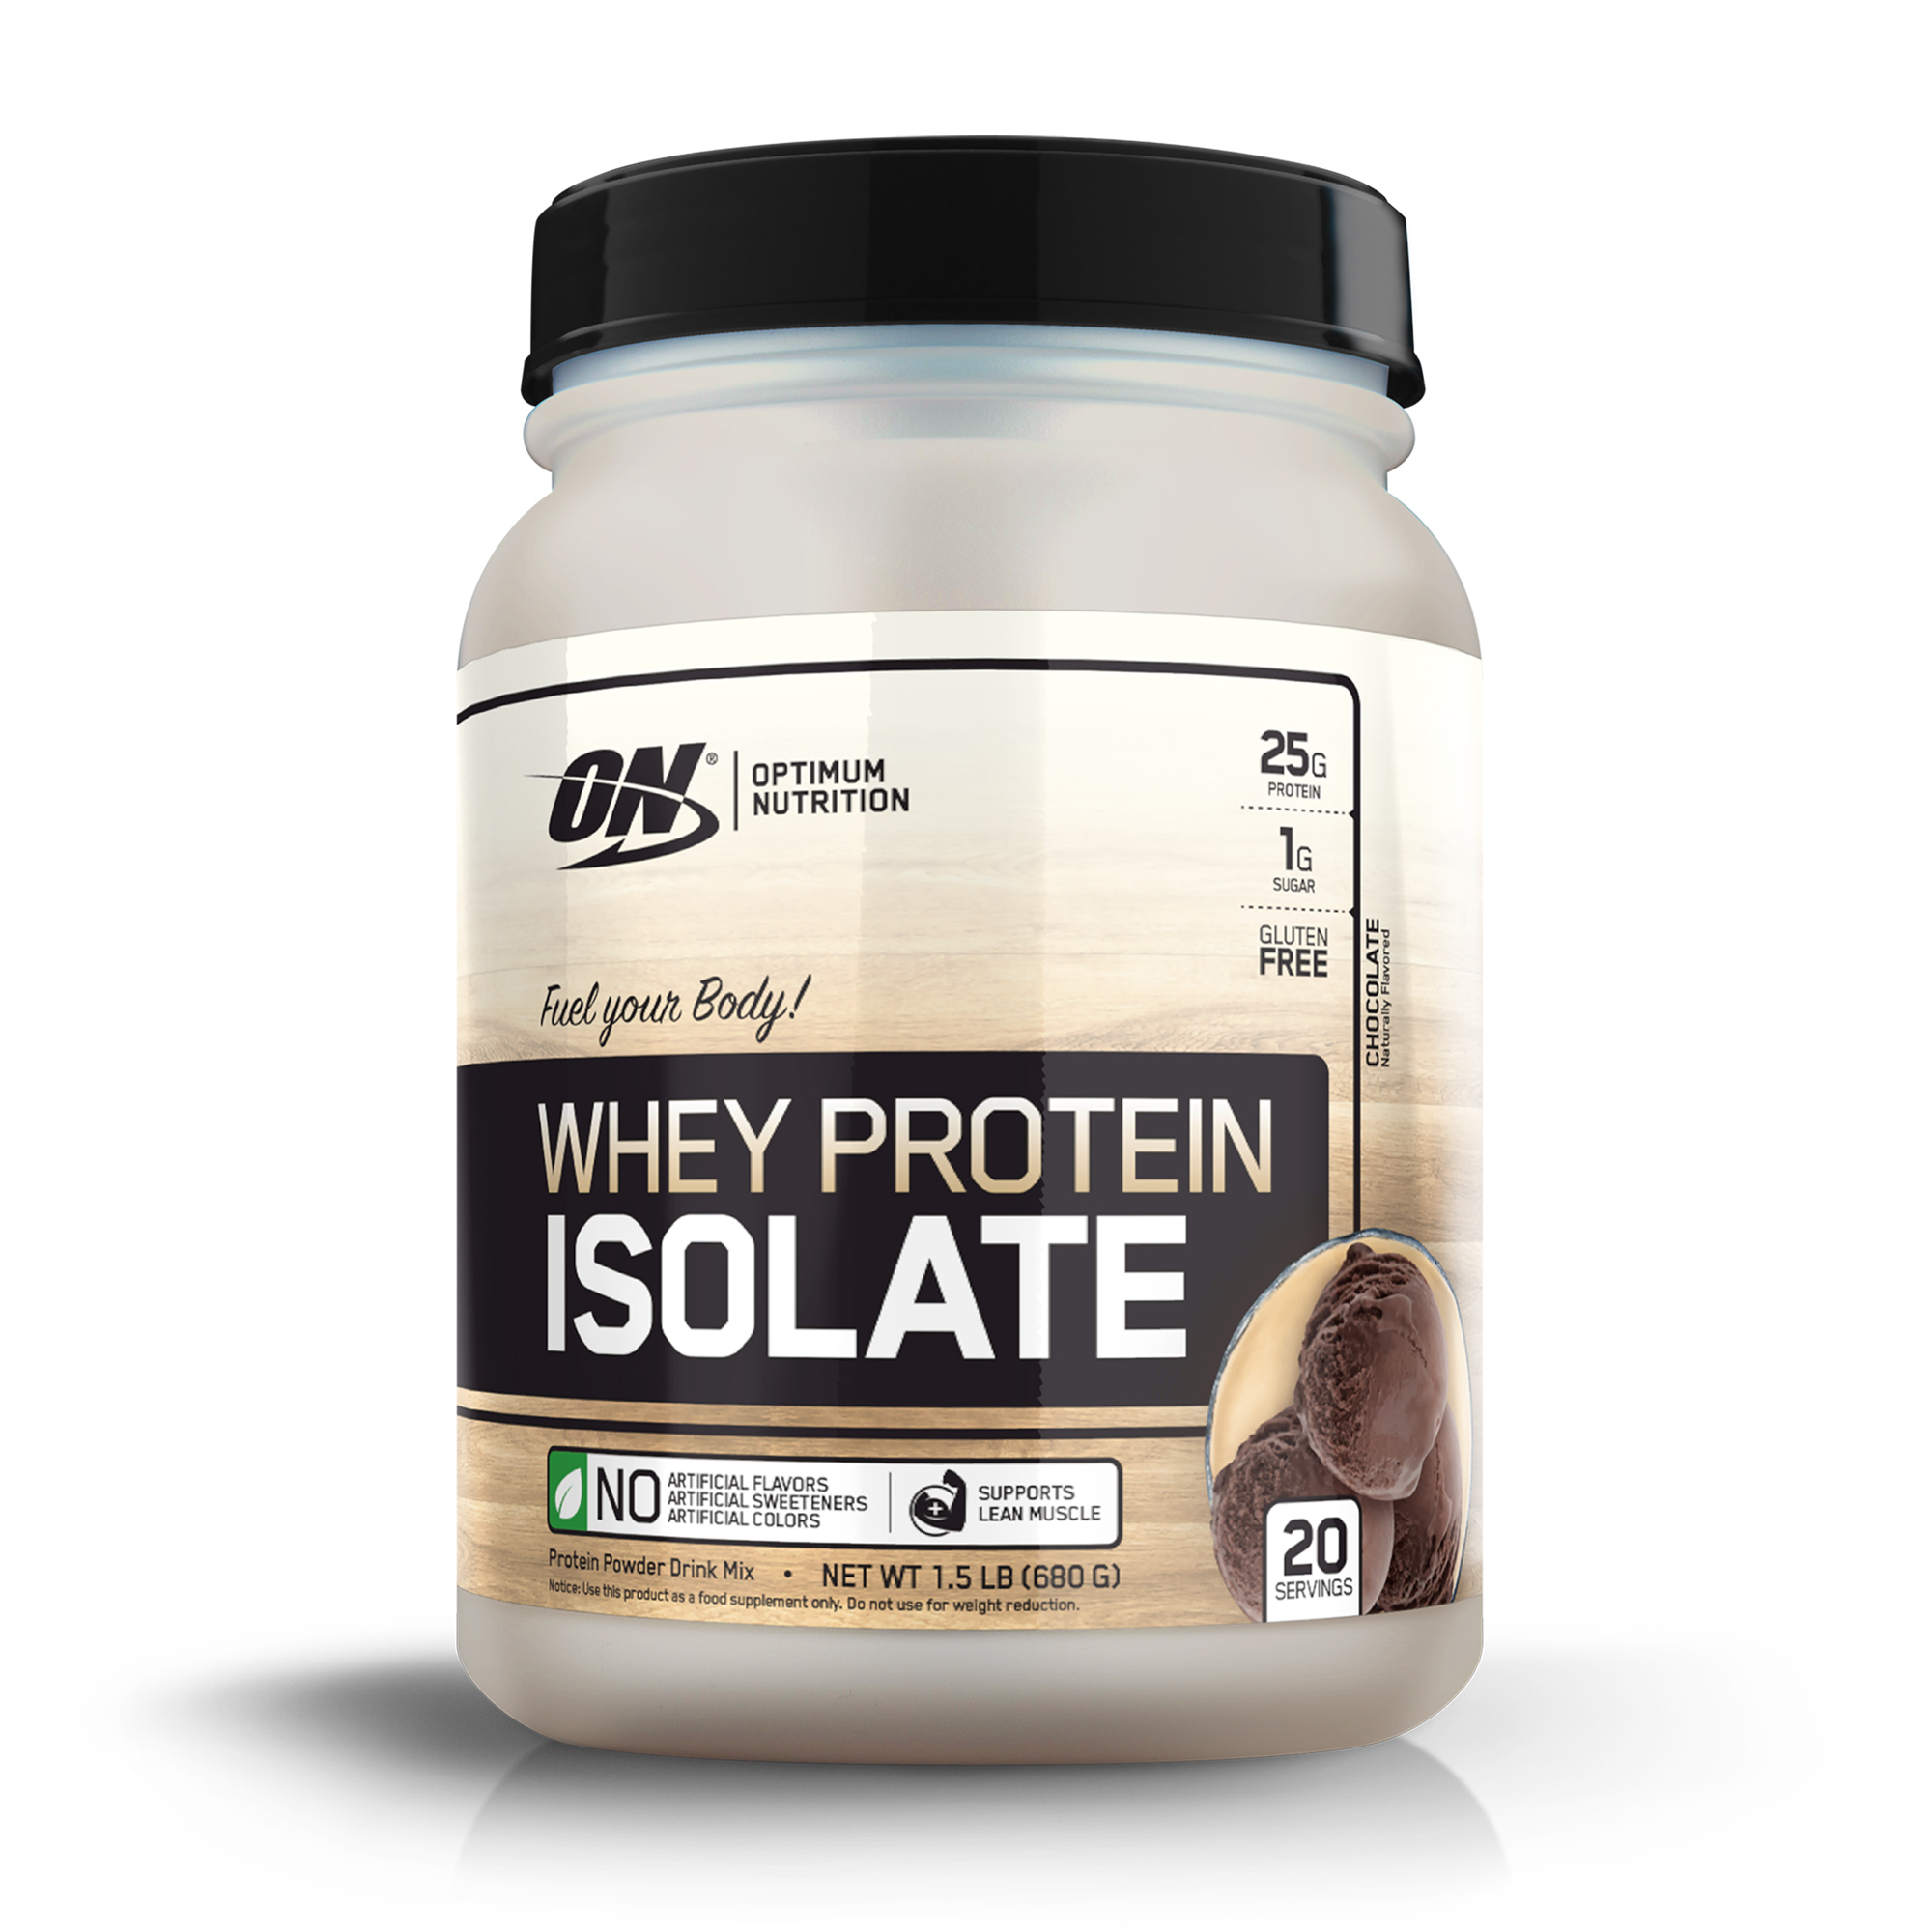 Optimum Nutrition Whey Protein Isolate, Chocolate, 25g Protein, 1.5 Lb